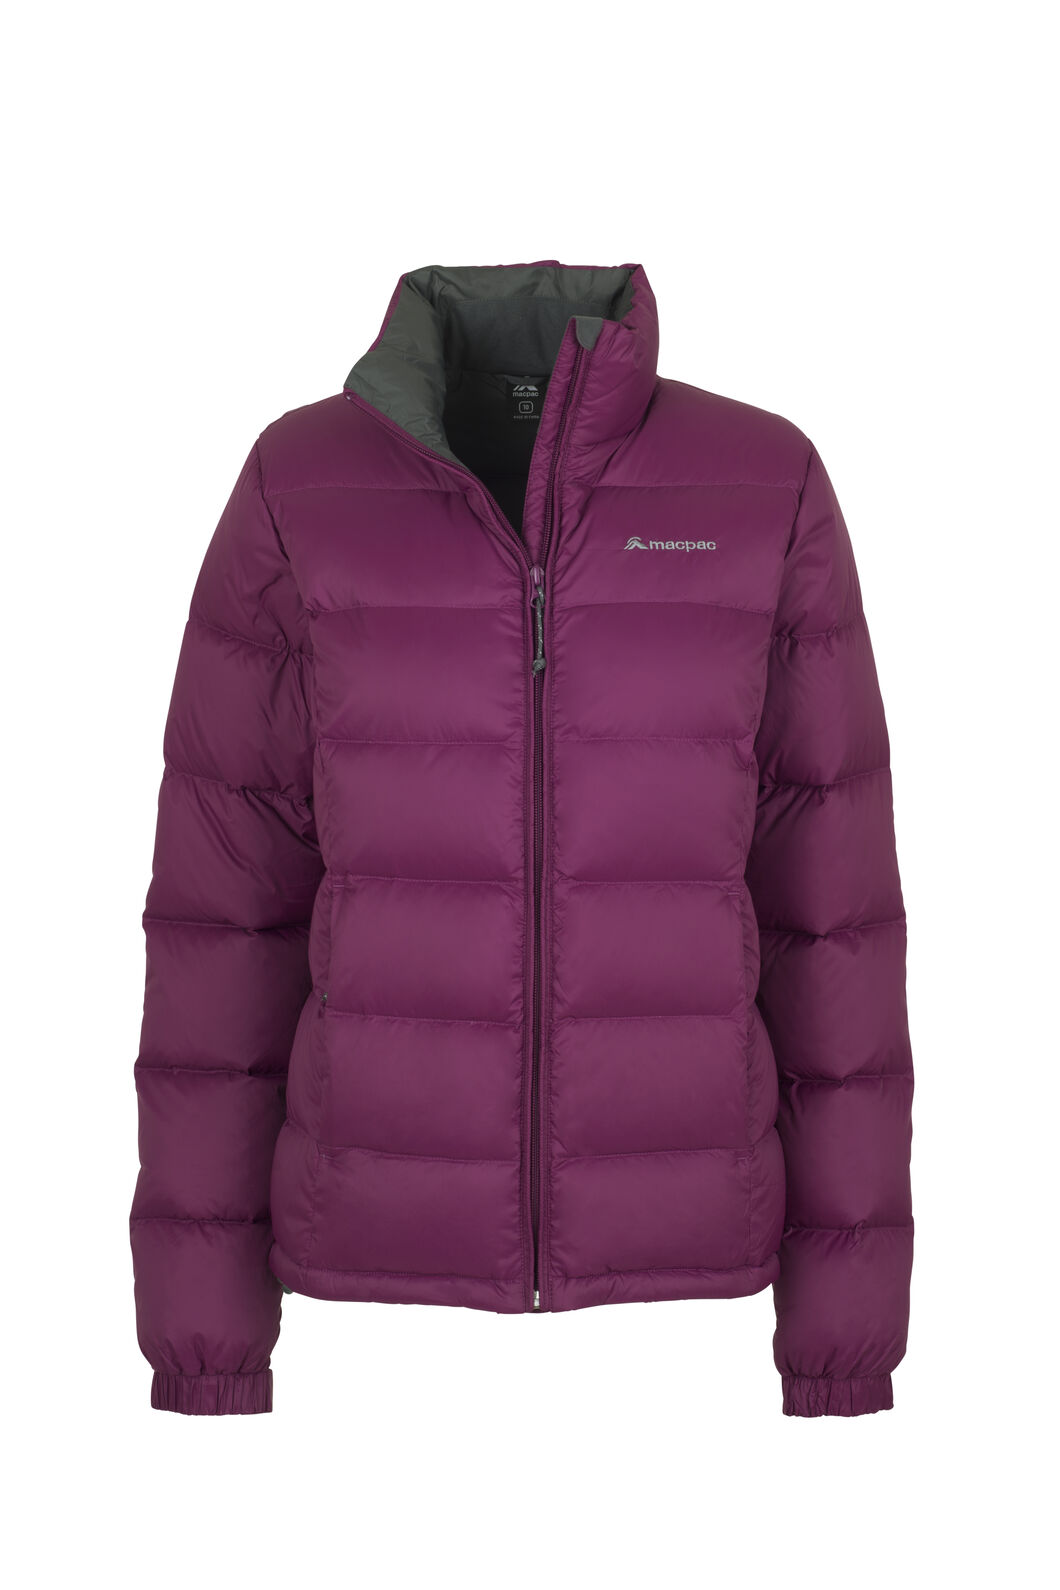 Macpac Halo Down Jacket - Women's, Magenta, hi-res